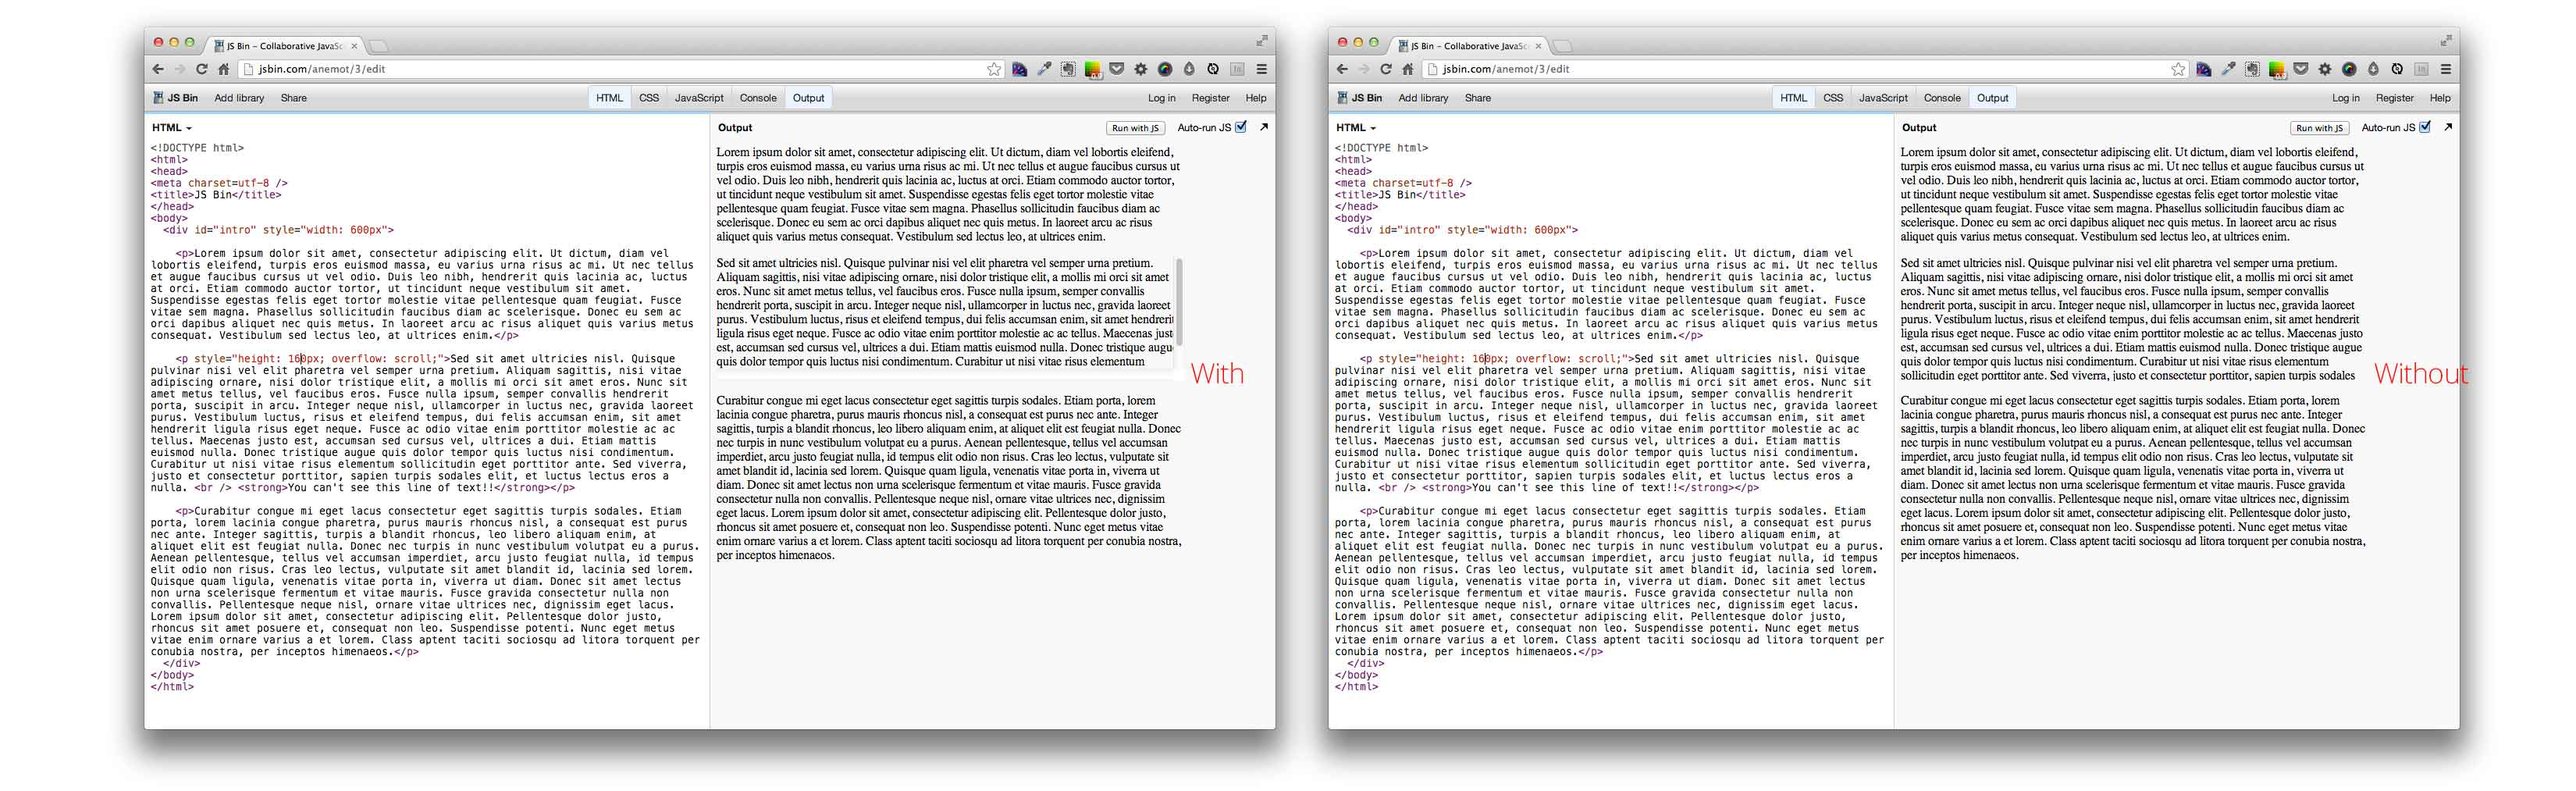 webkit-scrollbar on OS X - Mark Goddard - Interaction and UX